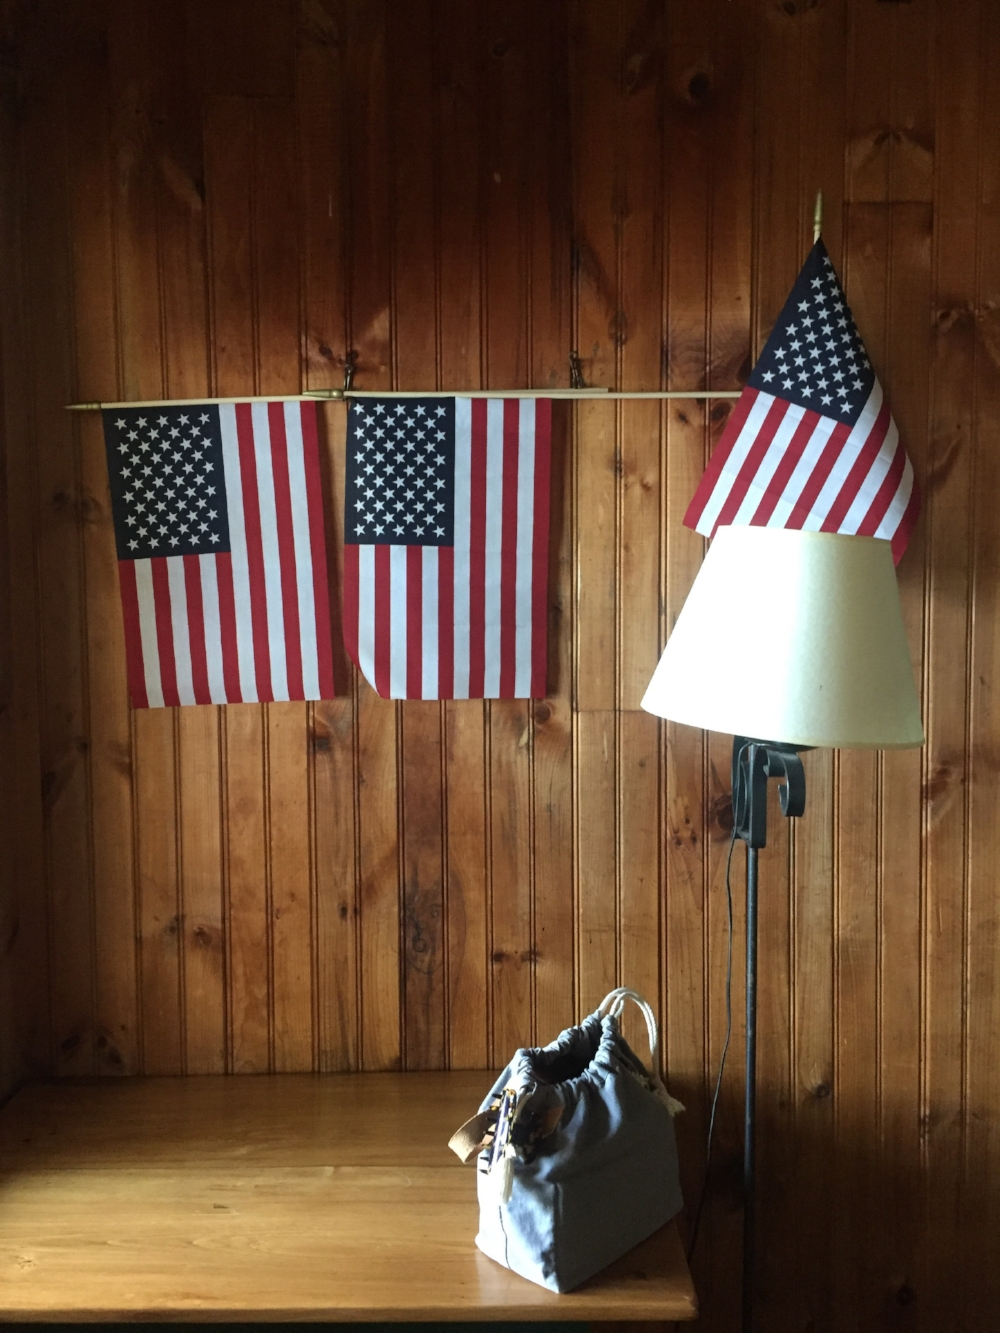 my cabin was also very patriotic